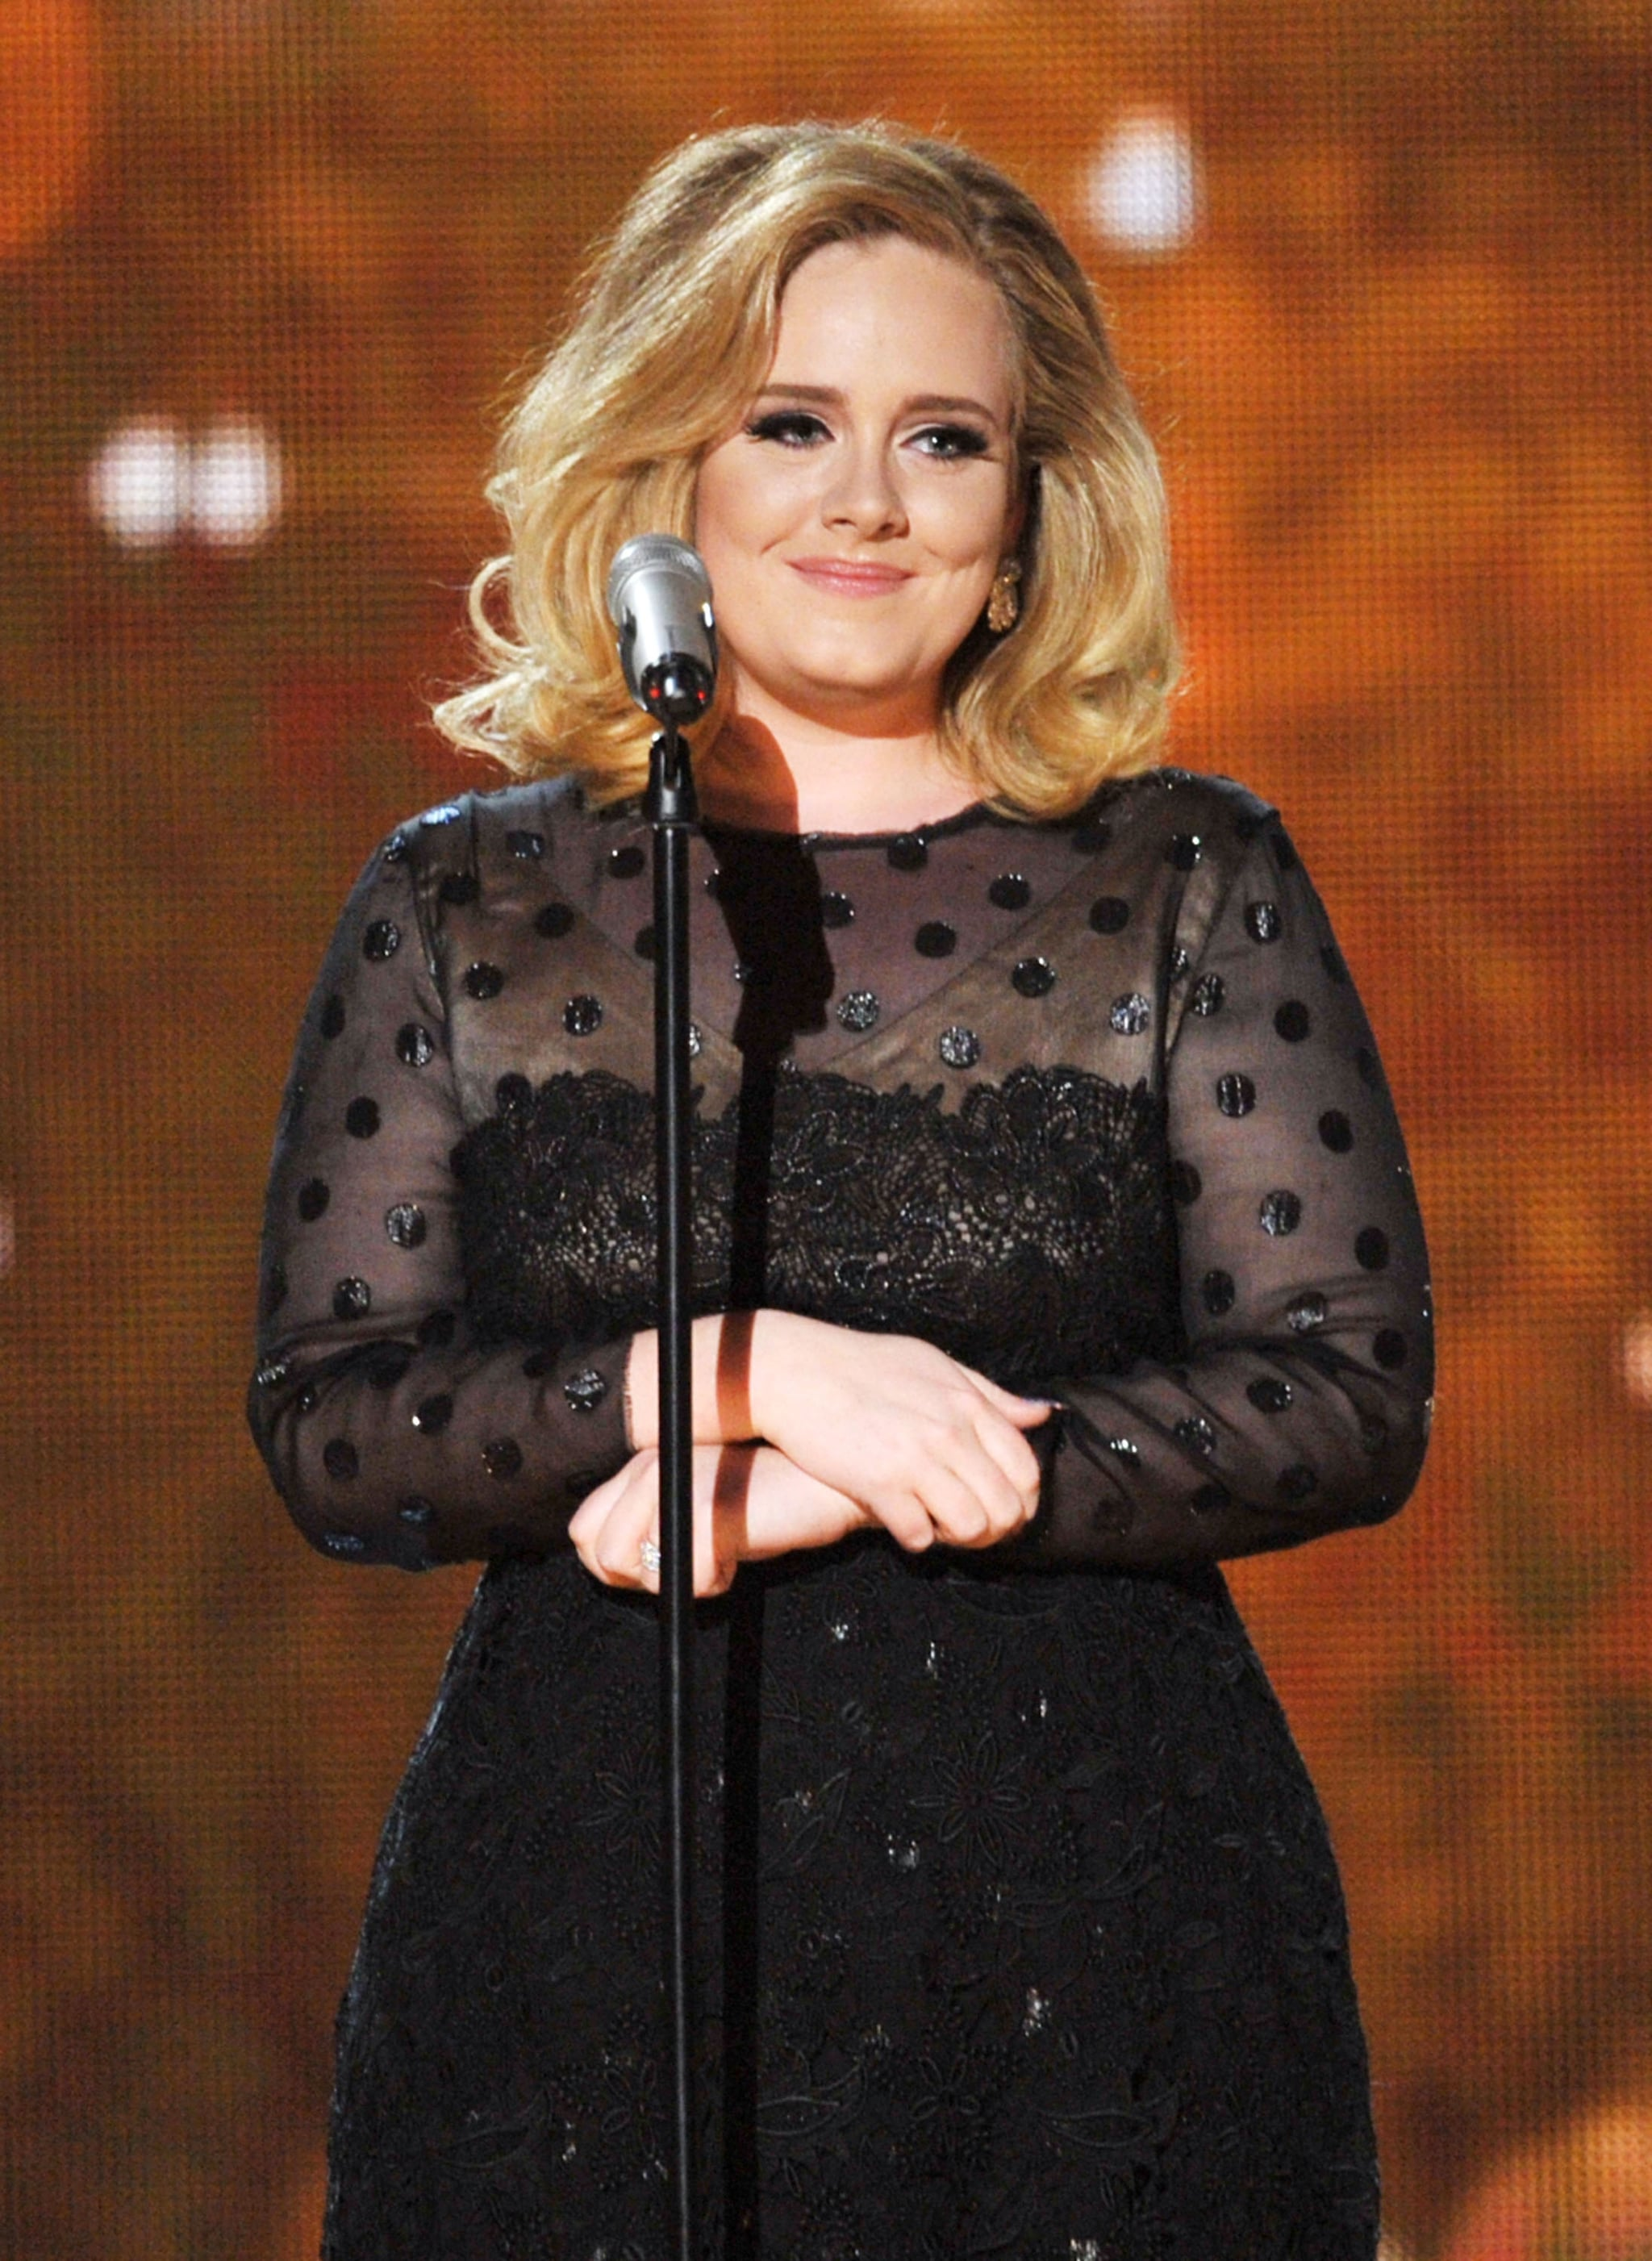 Adele performed at the Grammys.